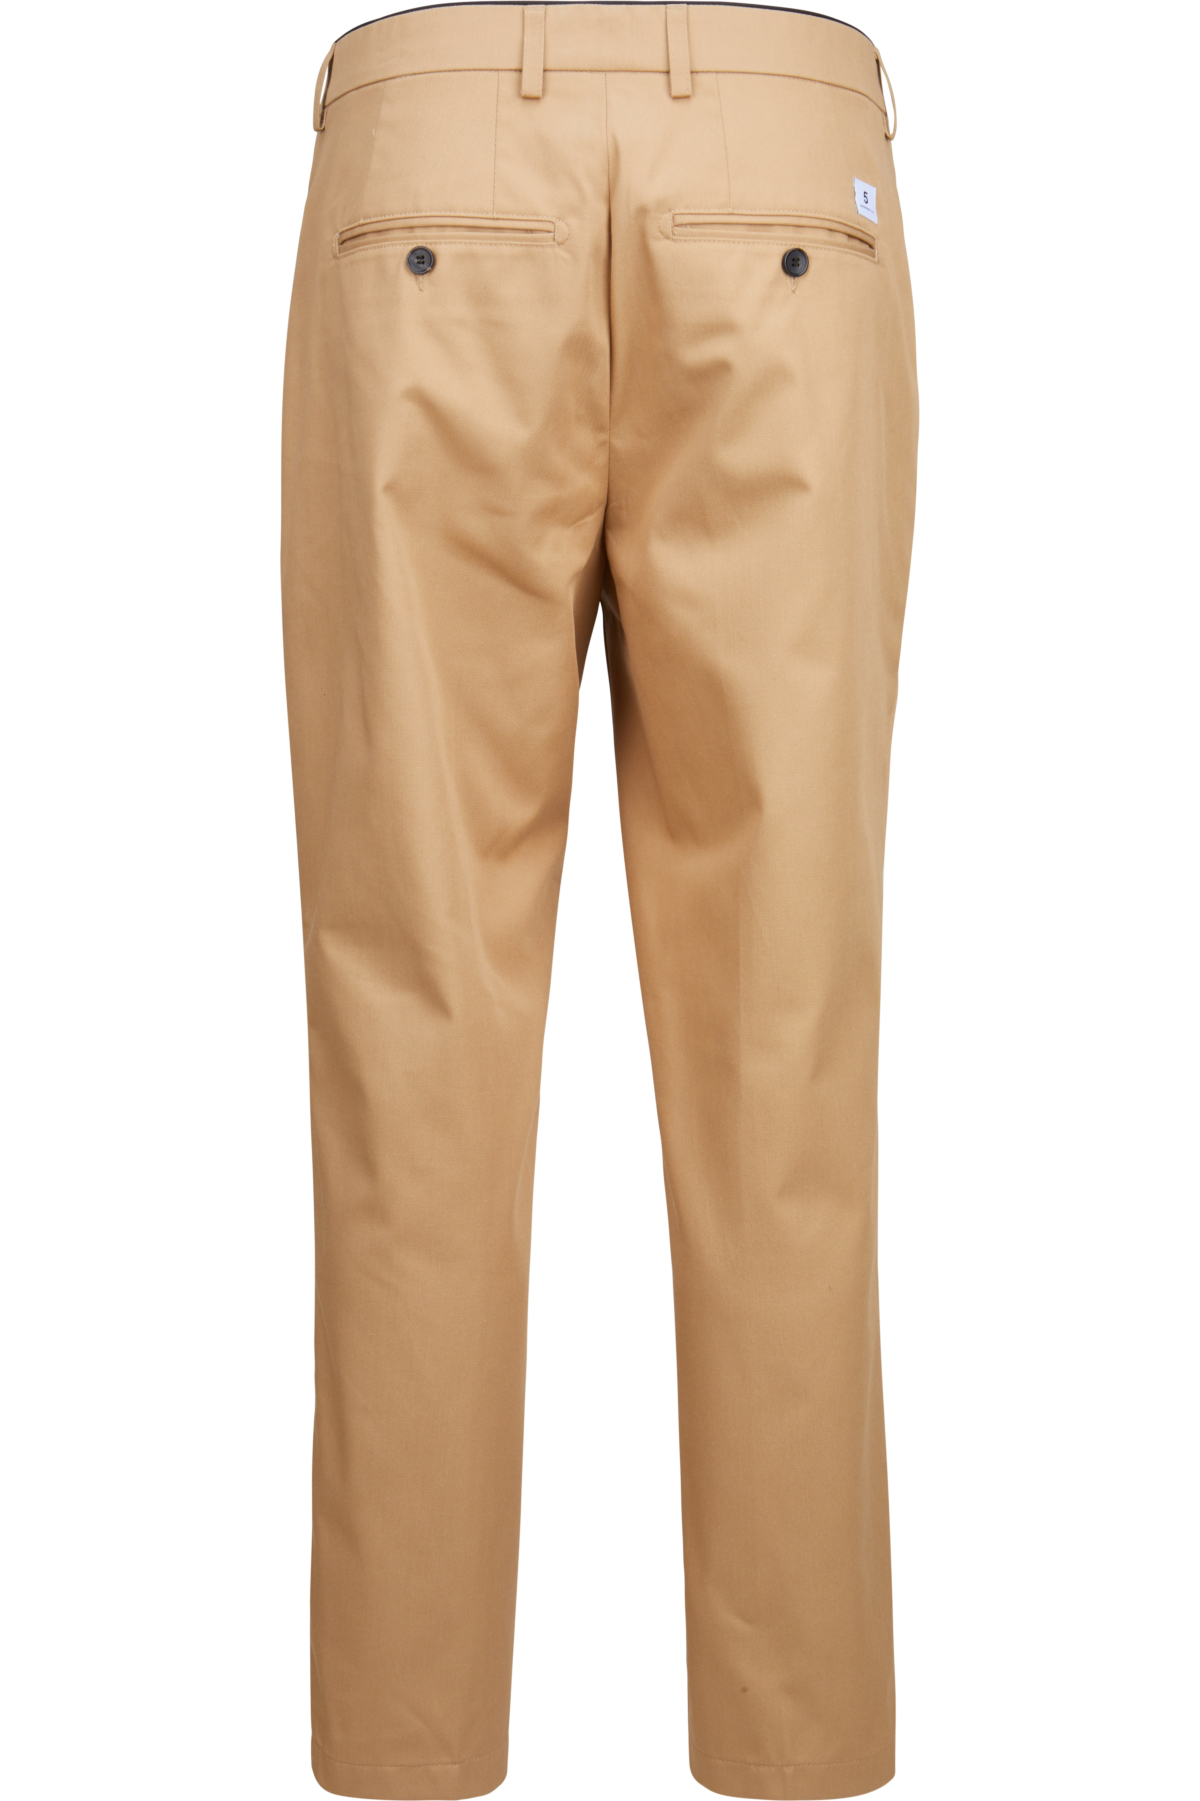 Department 5 Chino in Beige 431175